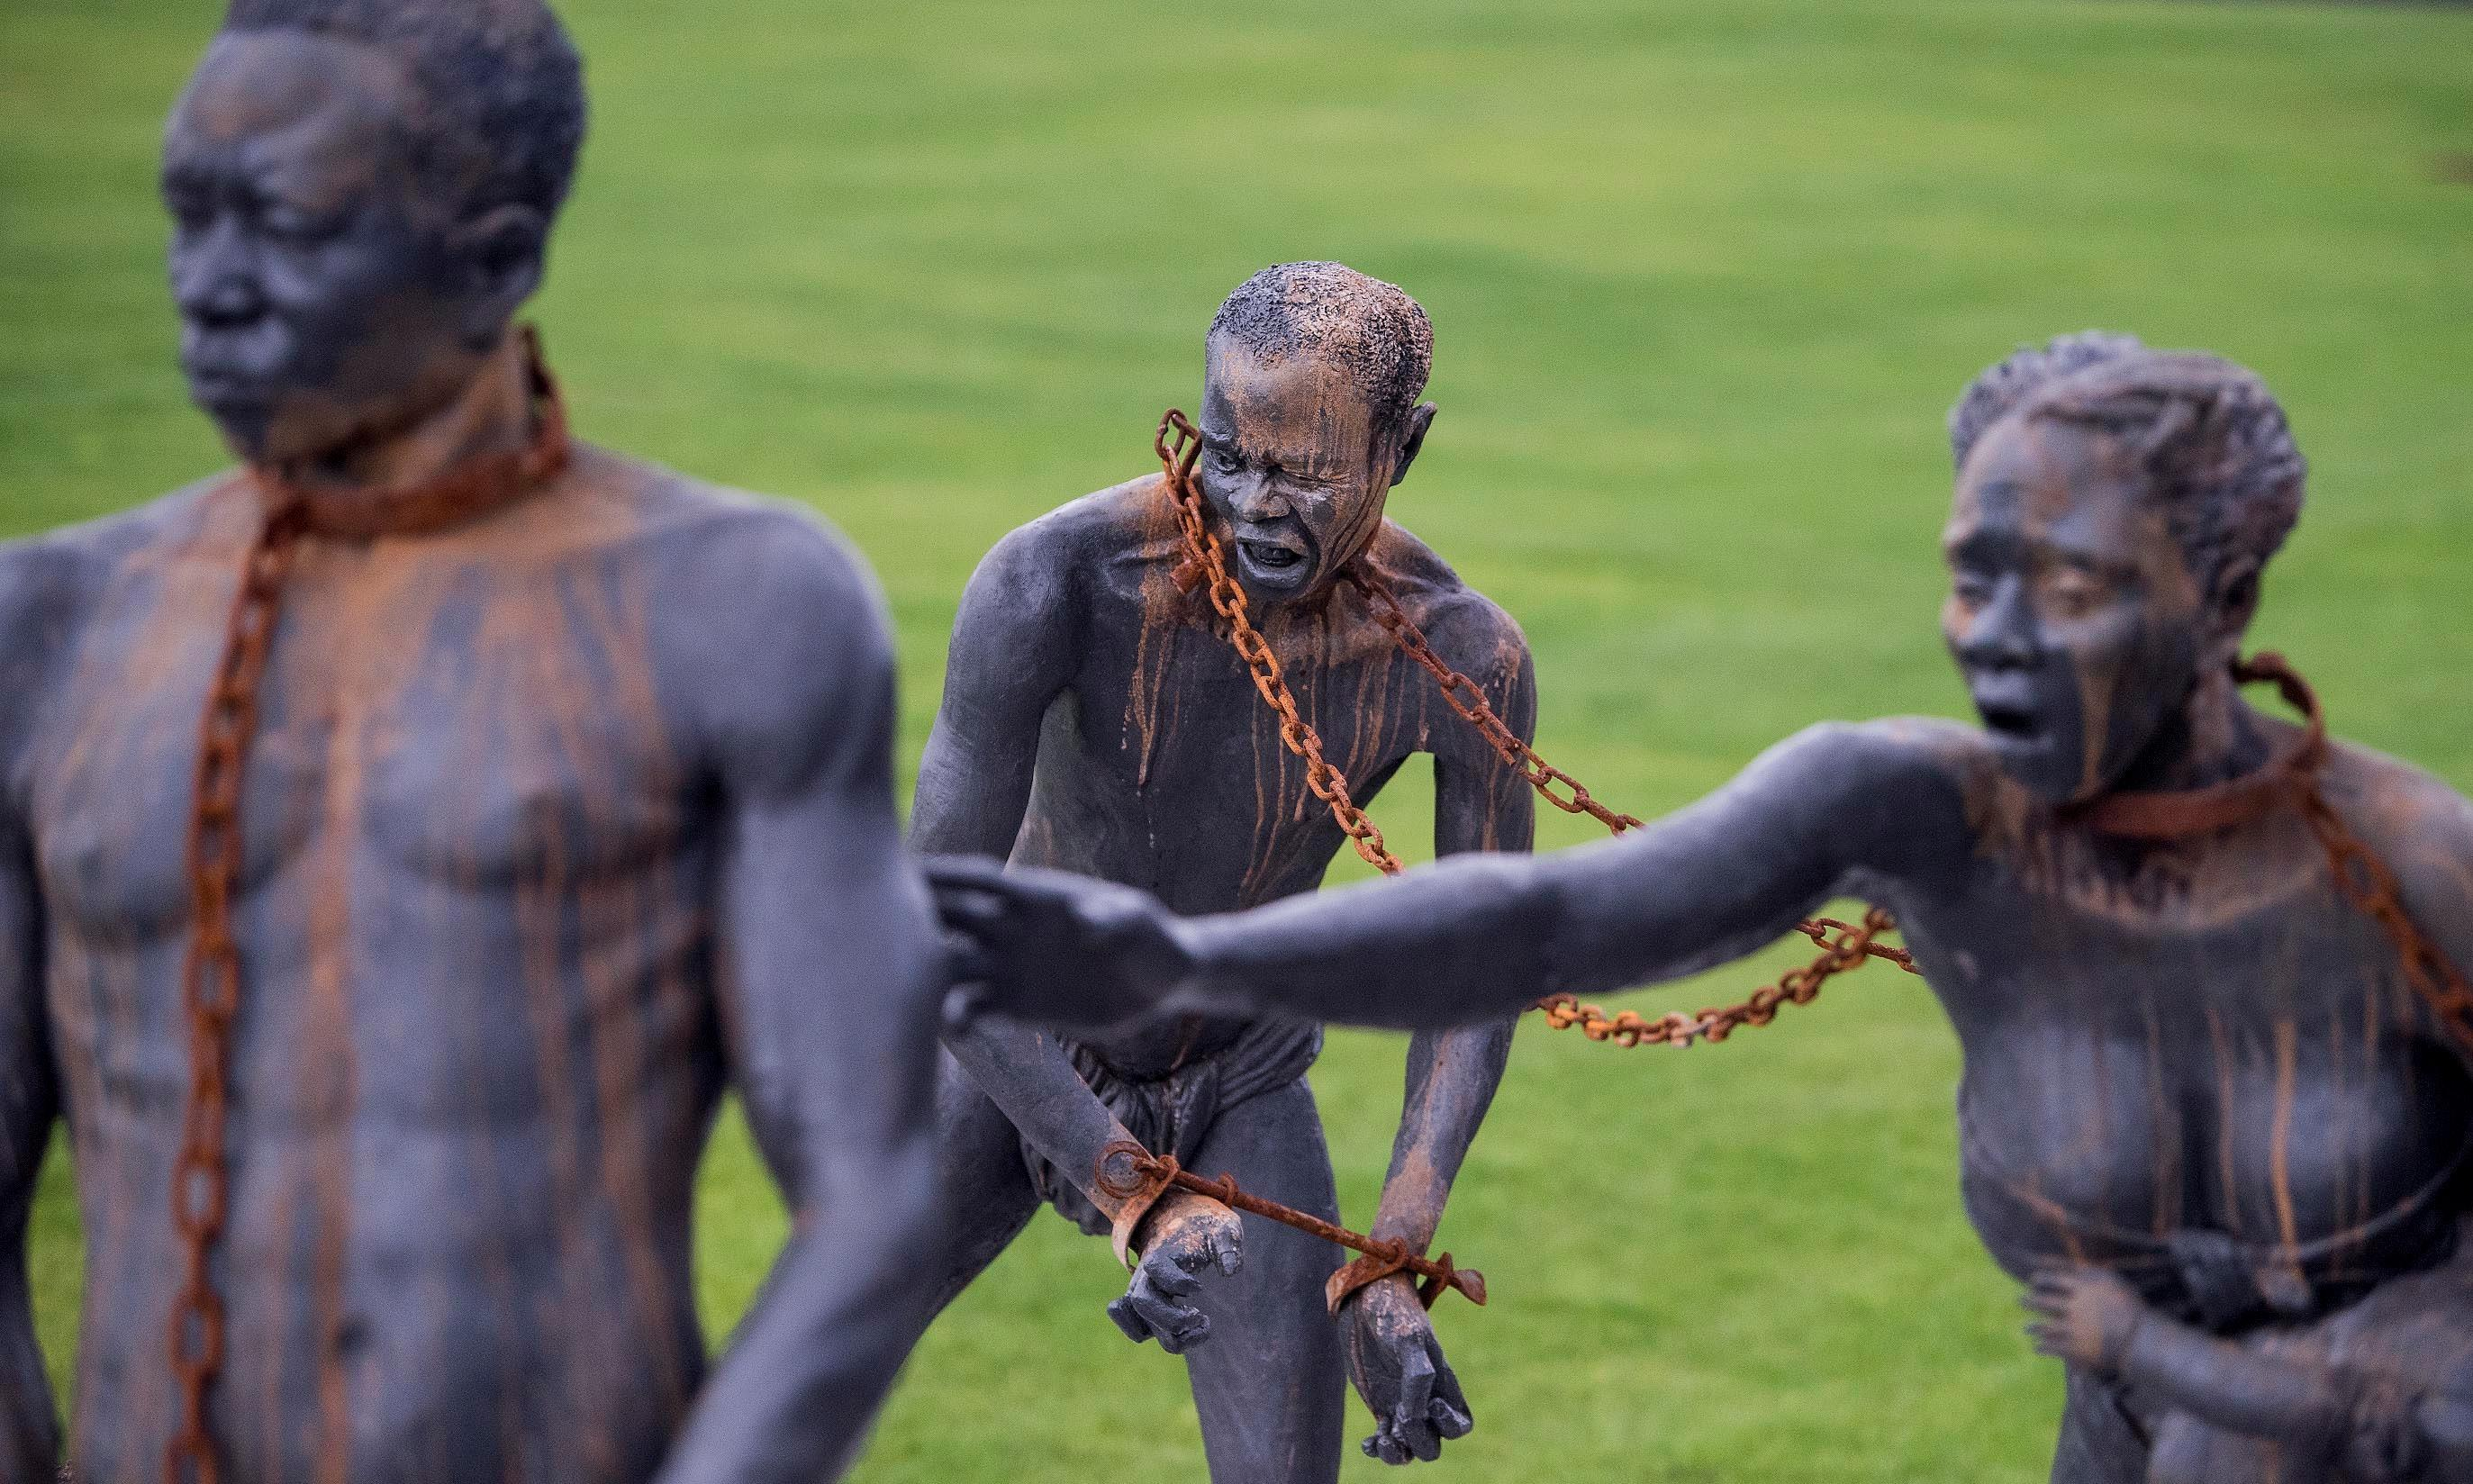 Britain's despicable history of slavery needs teaching and commemorating